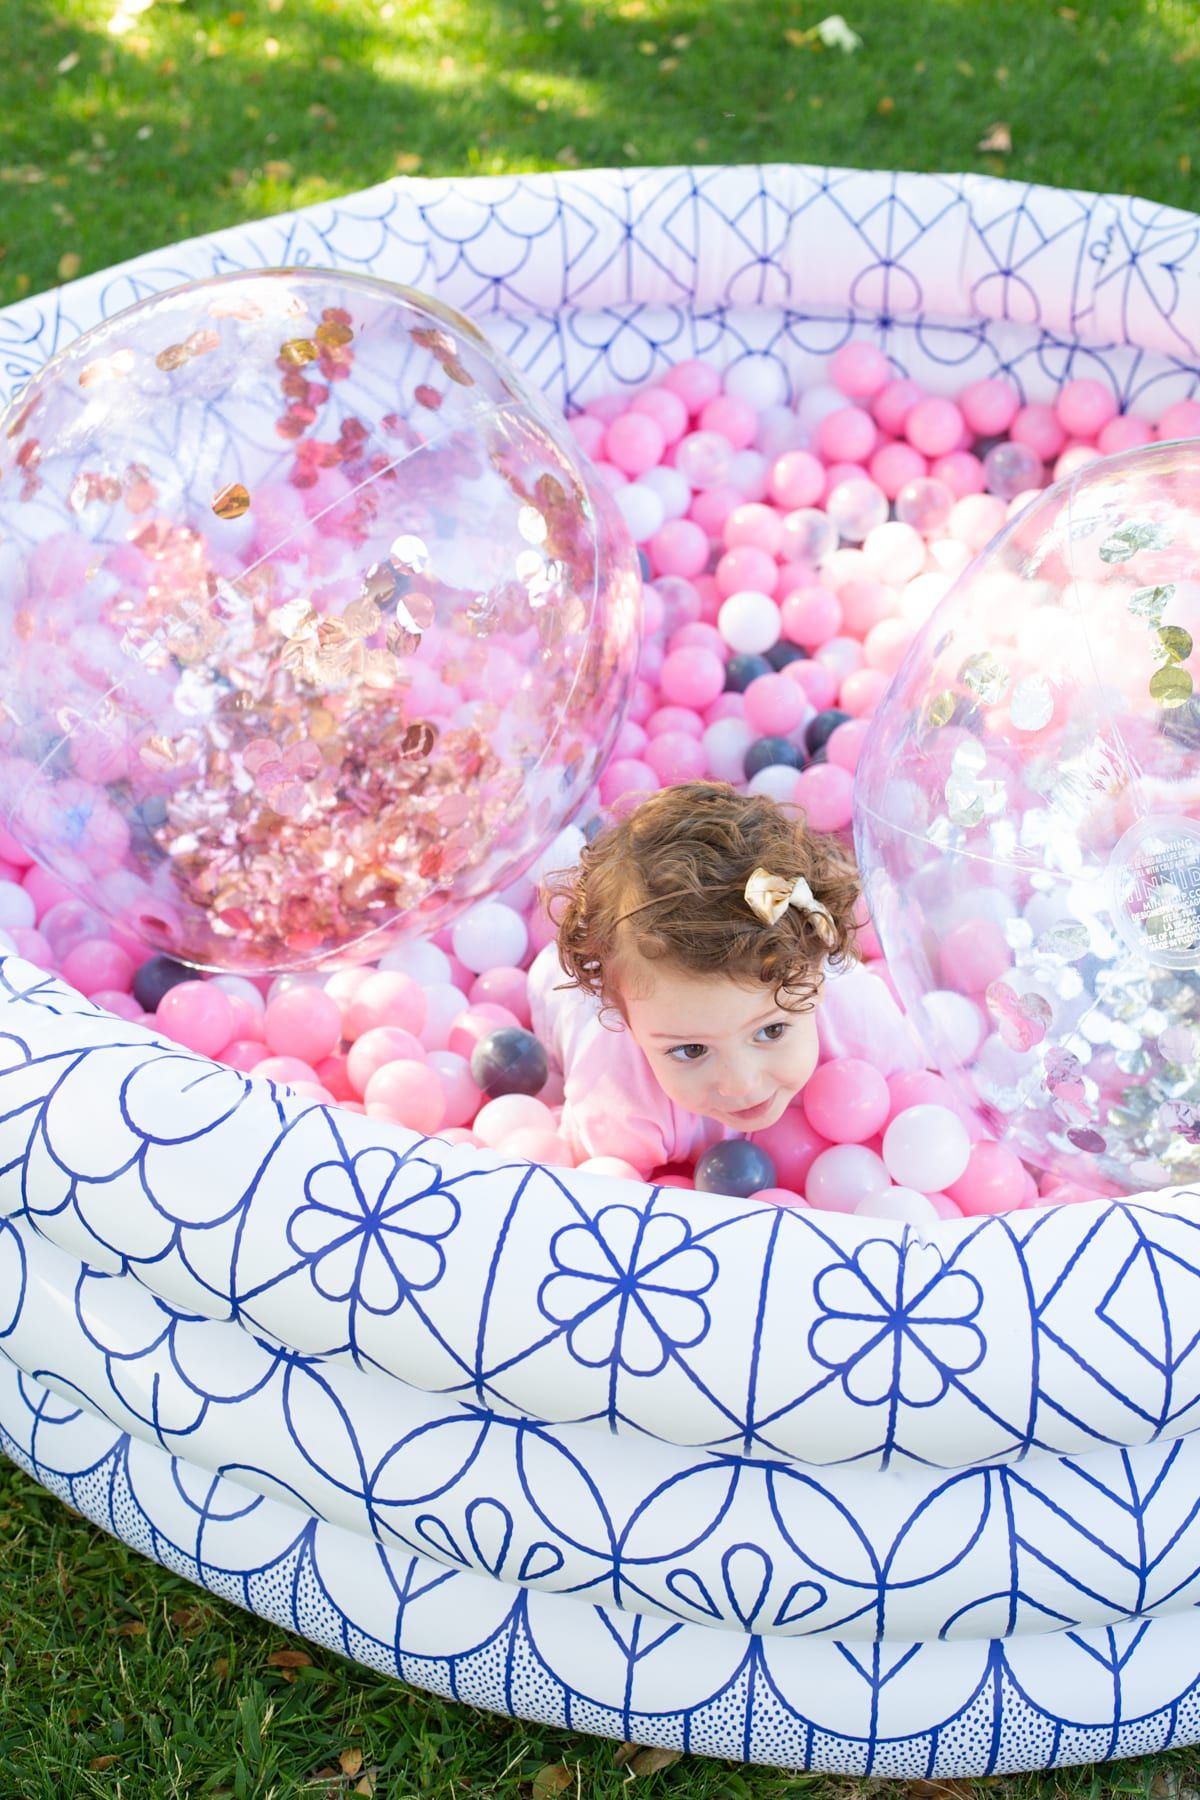 How to Make a DIY Ball Pit » Tutorial from Lovely Indeed